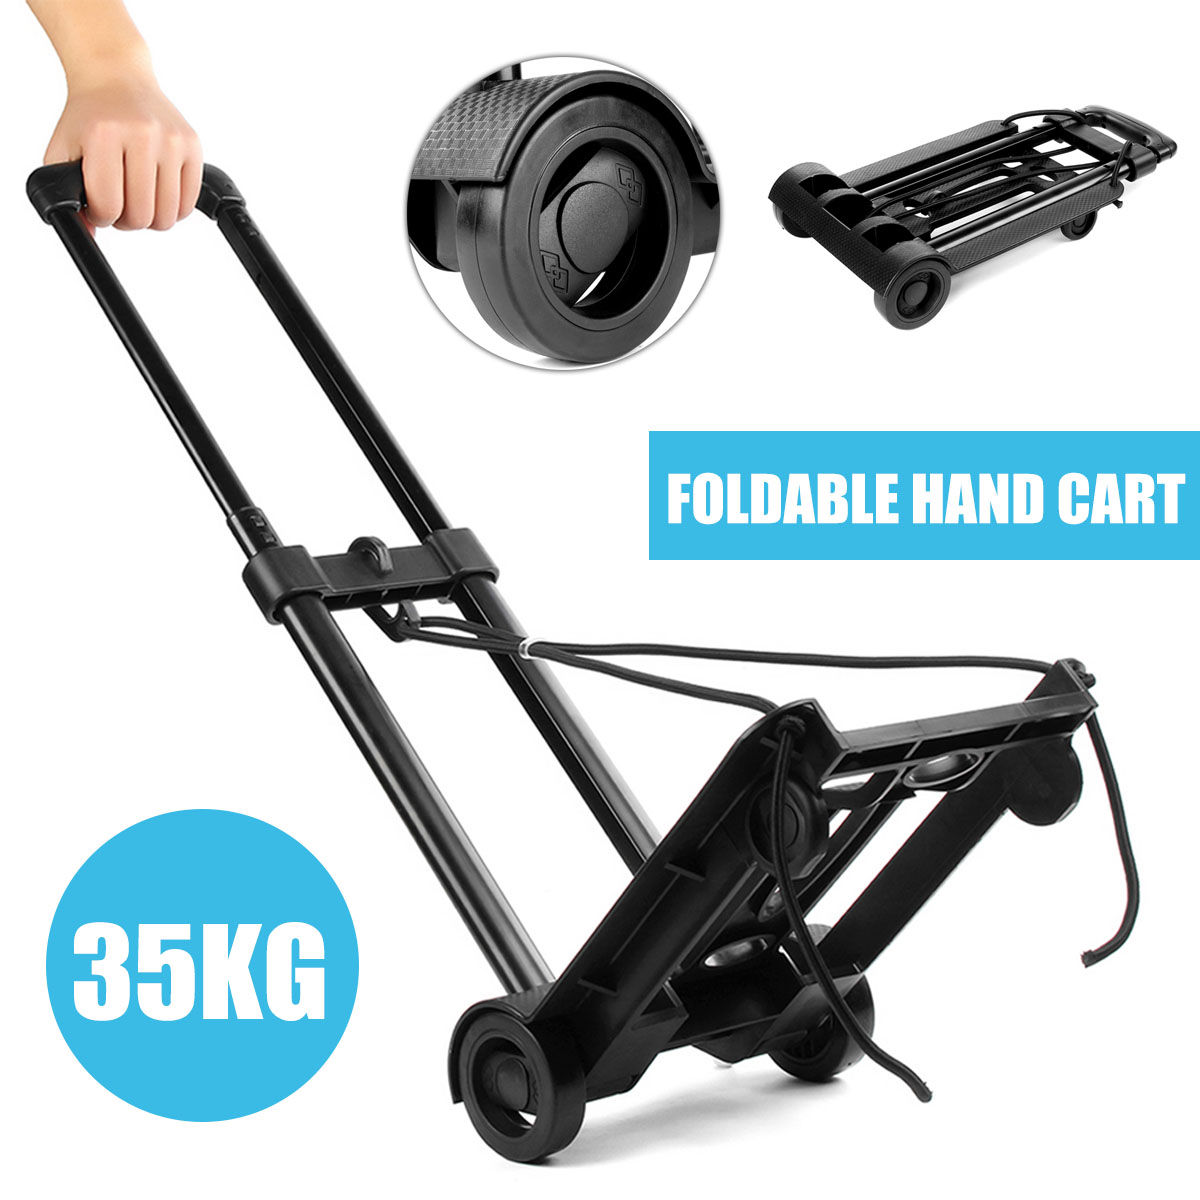 35KG Foldable Hand Luguagge Trolley Cart Adjustable Metal Alloy Handcart Heavy D